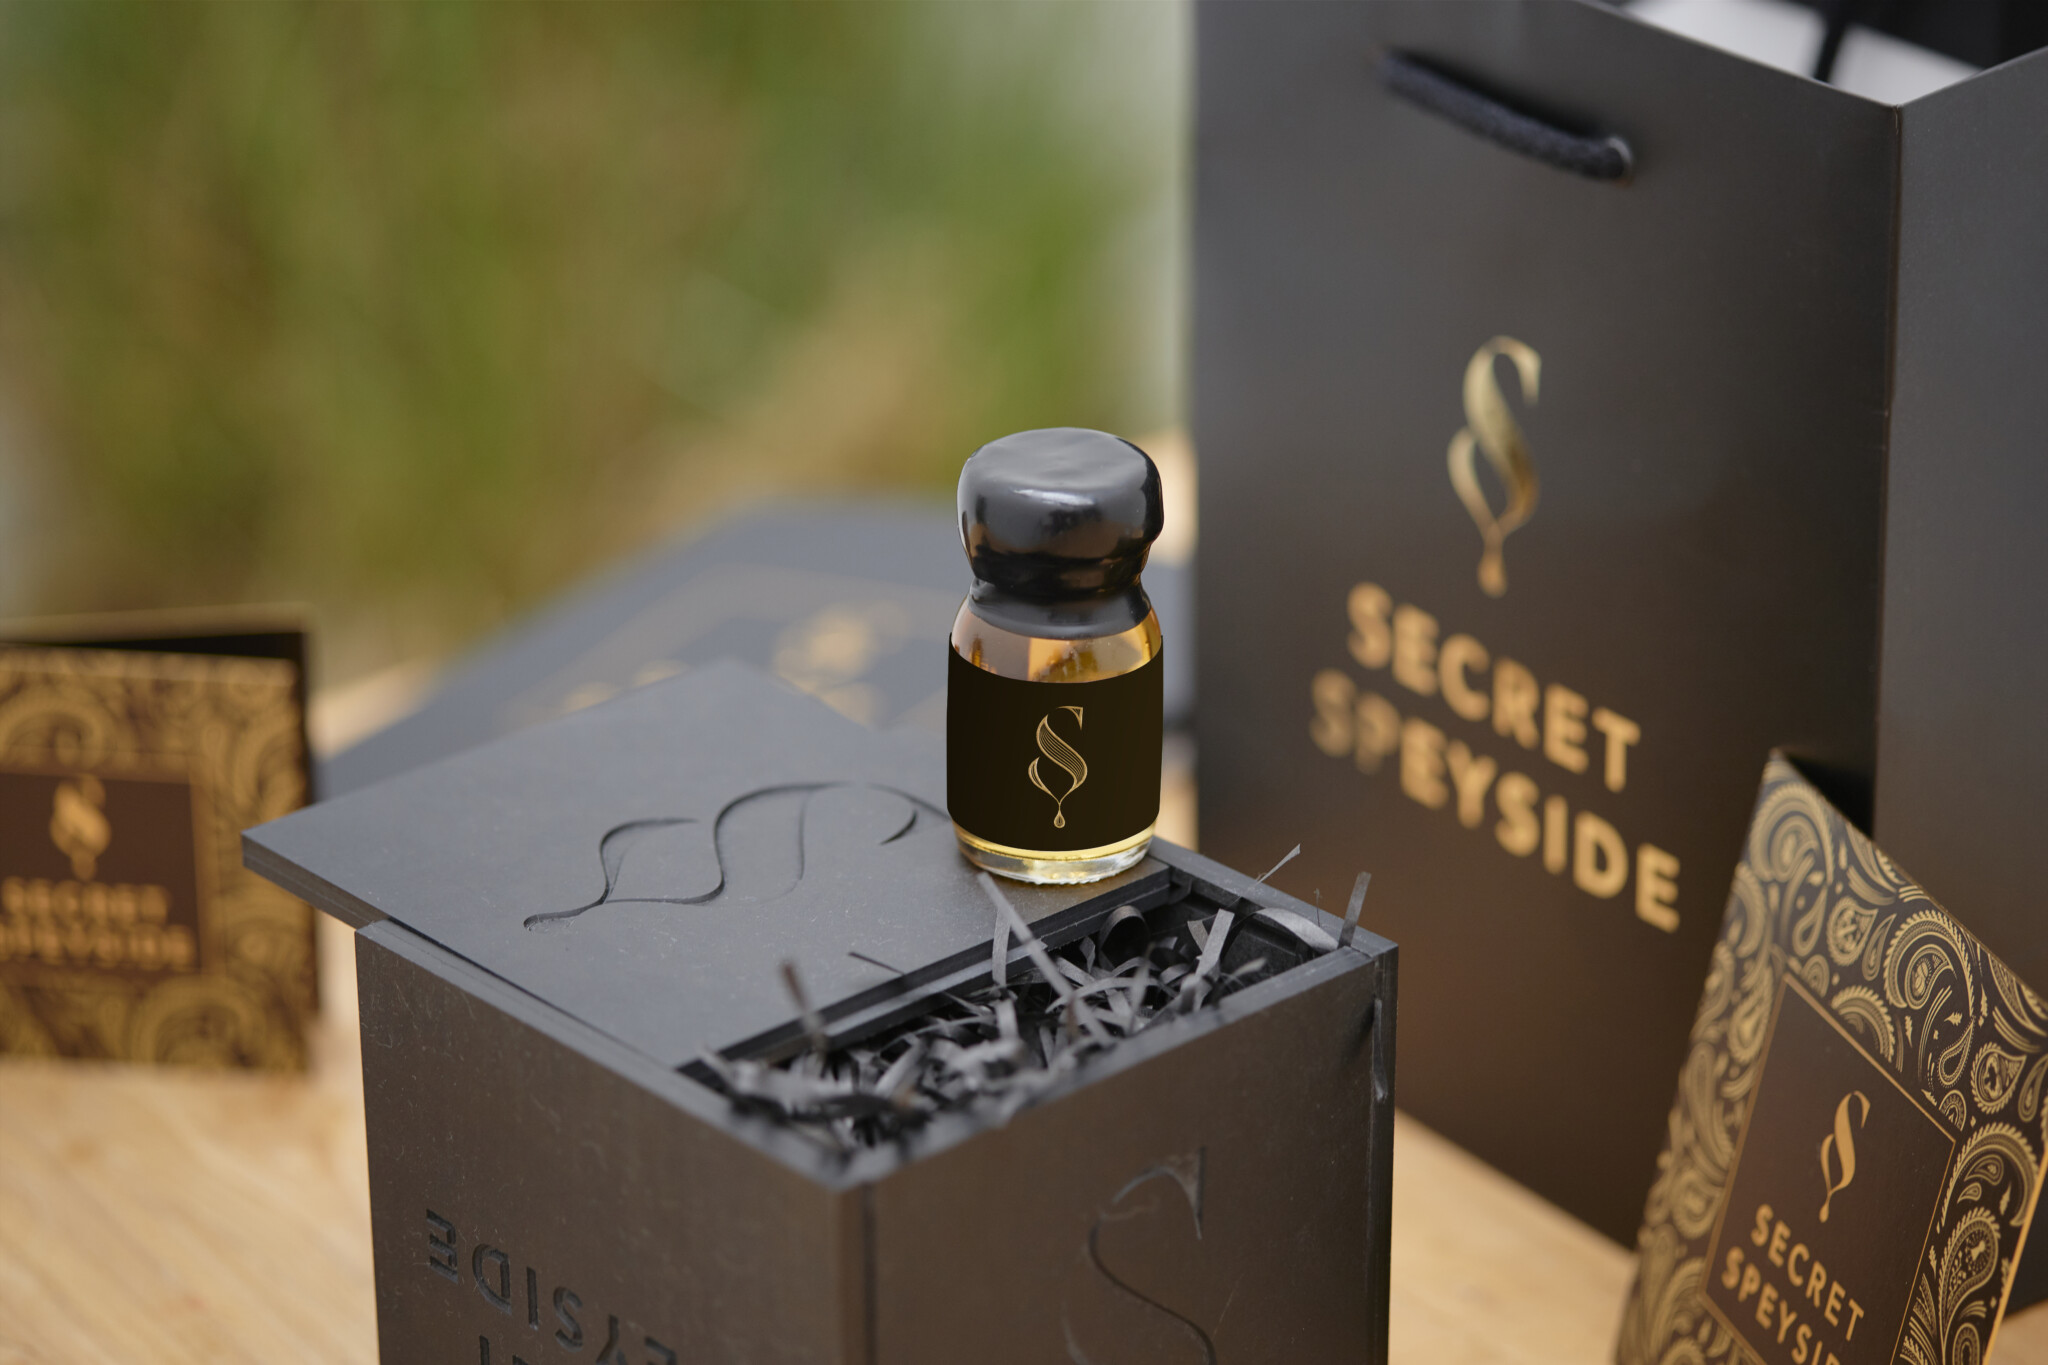 Secret Speyside launch event. image